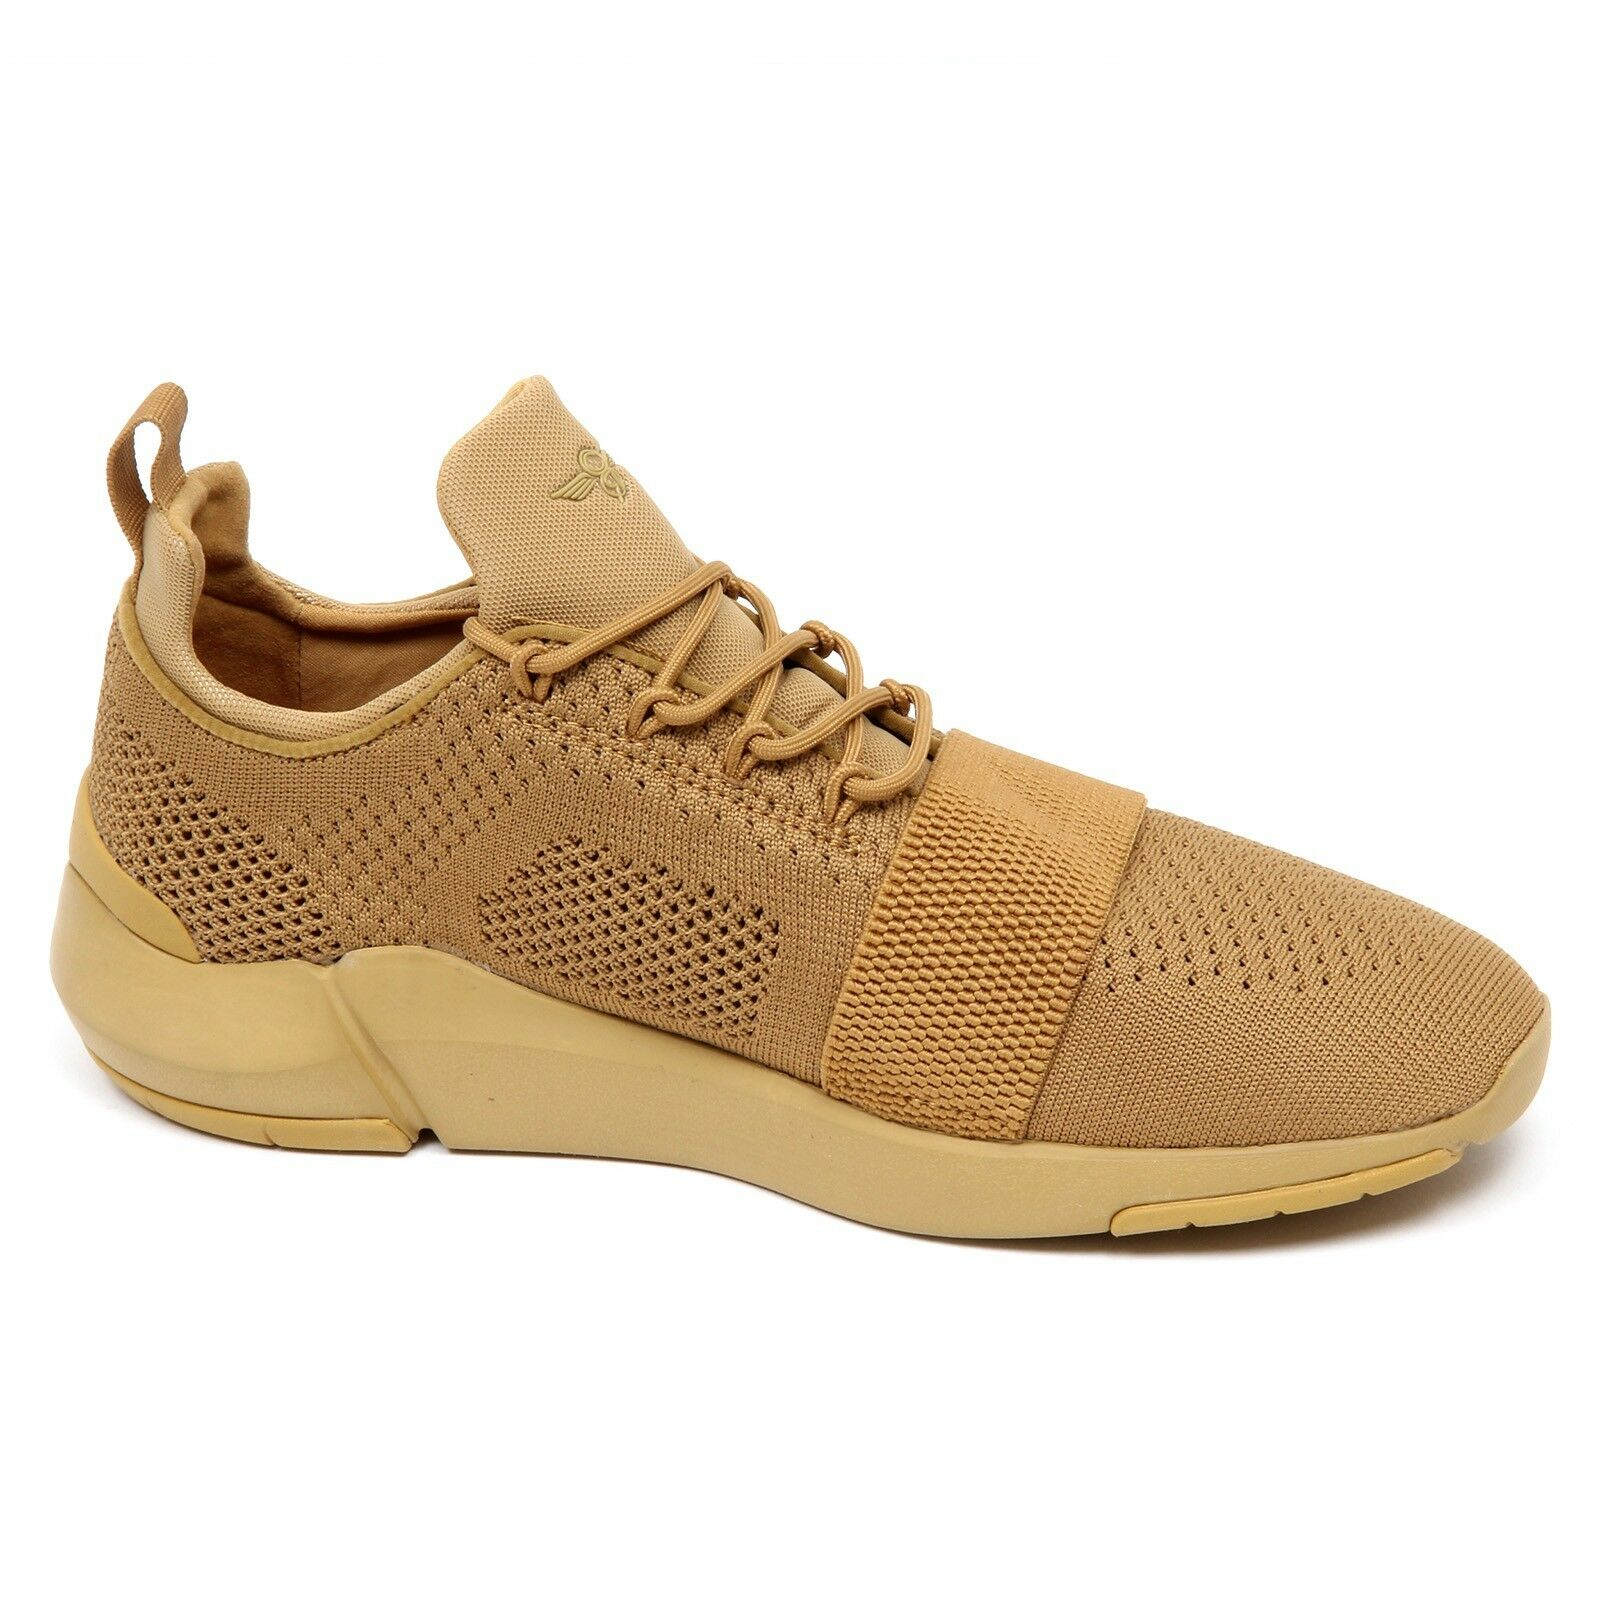 D4660 (without box) sneaker uomo sand CREATIVE RECREATION shoe man